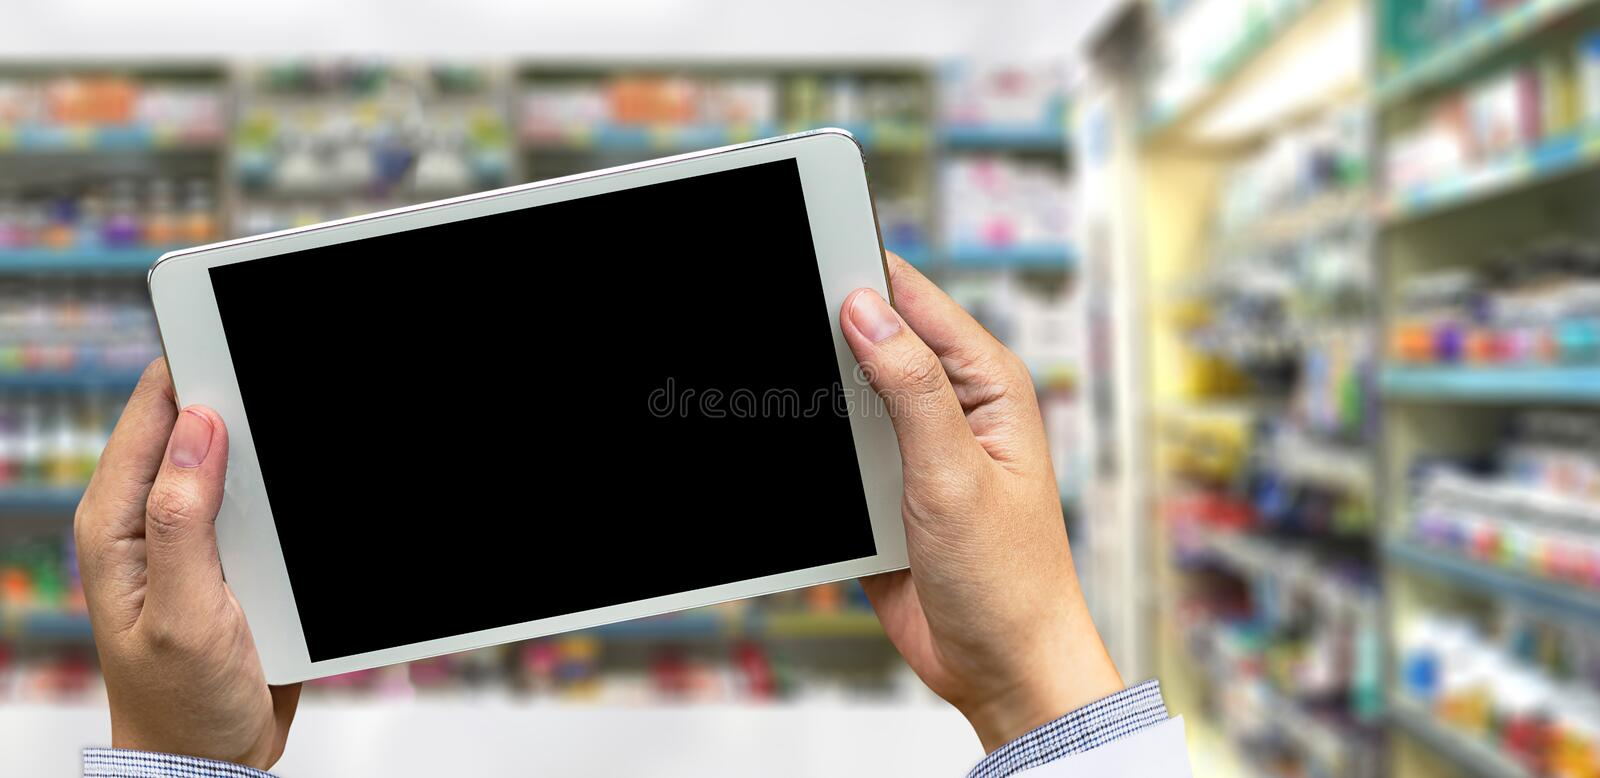 business pharmacy drugstore Healthcare concept pharmacists in royalty free stock photo